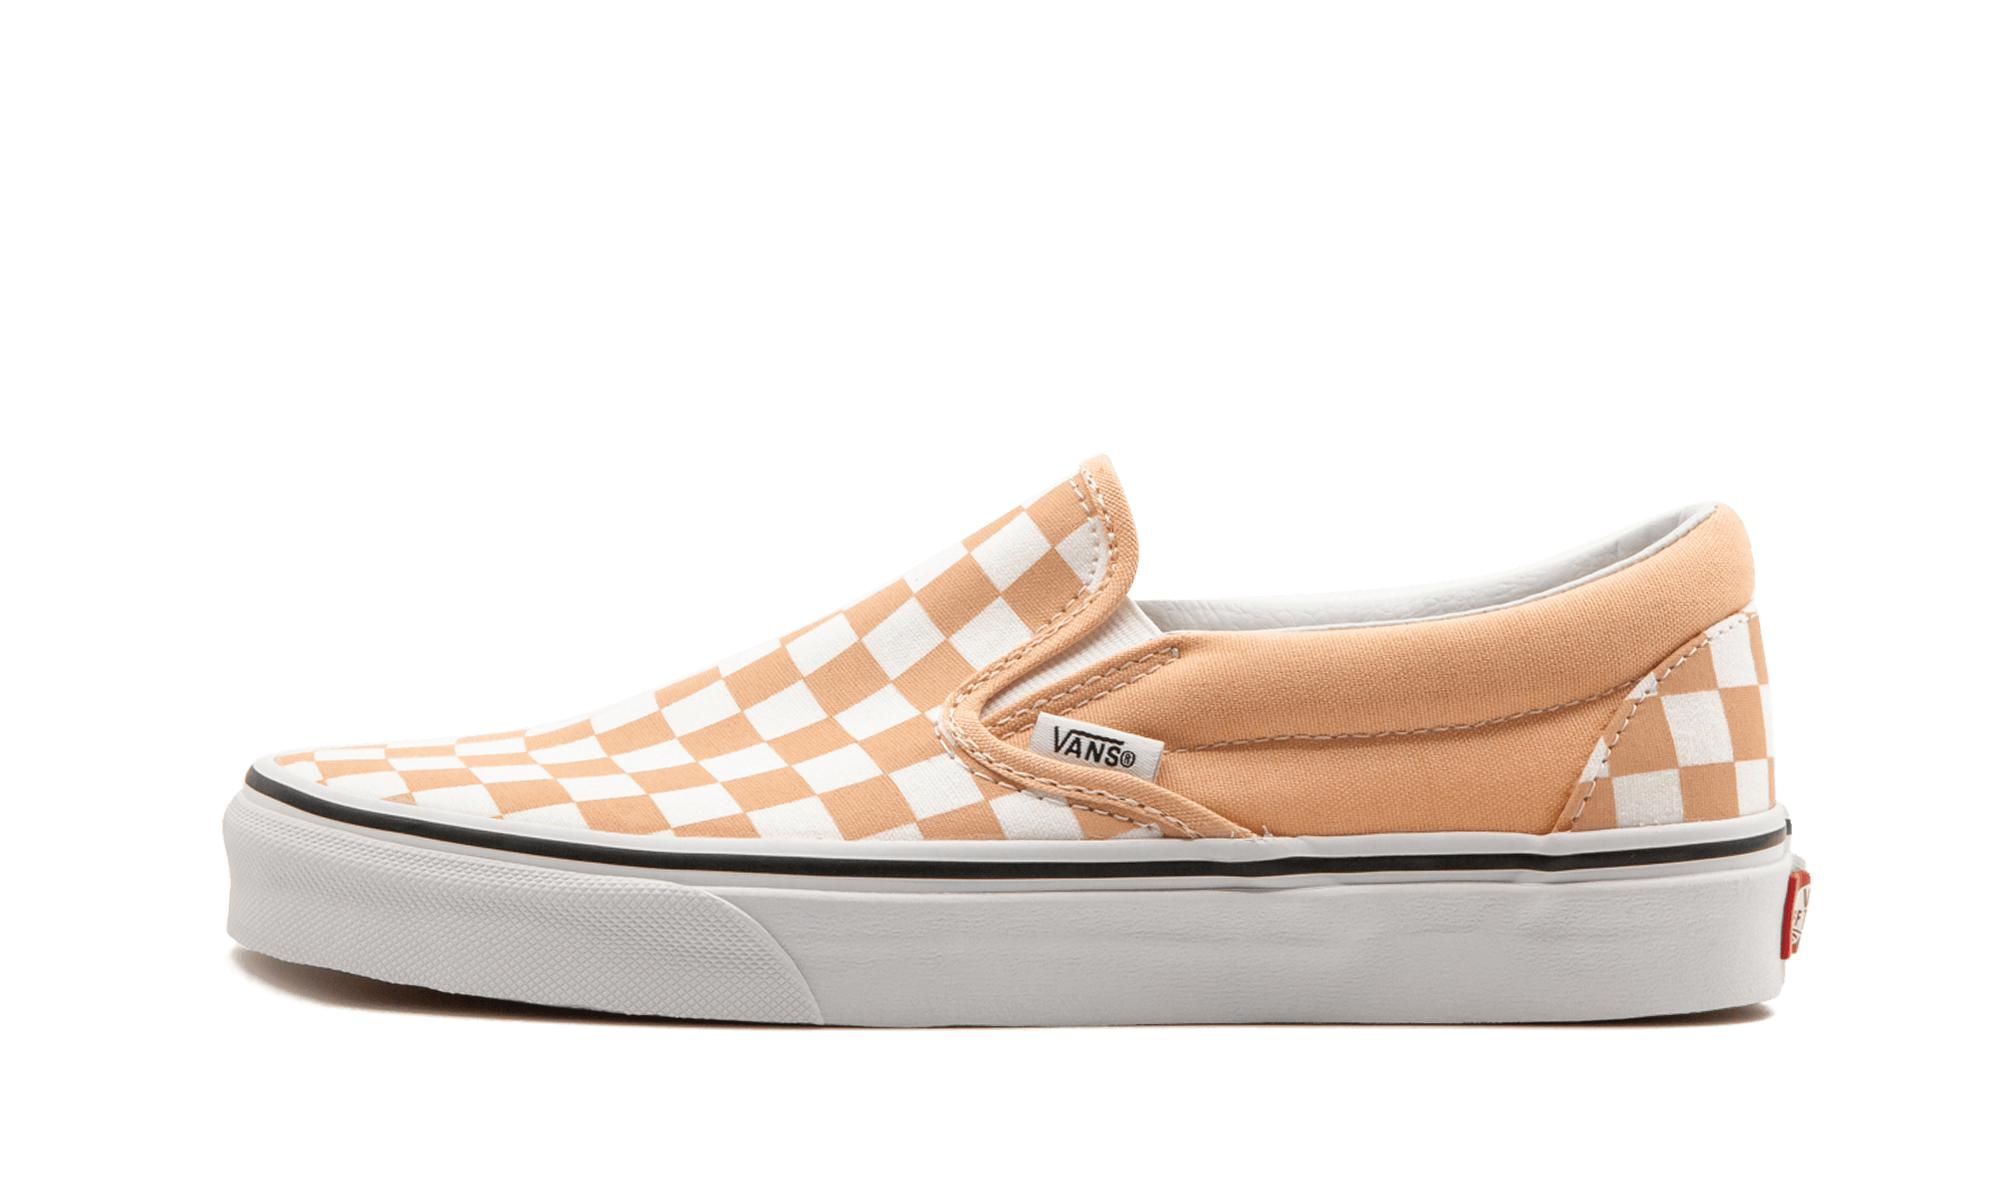 Vans Classic Slip-on (checkerboard) for Men - Lyst 040ca7d91